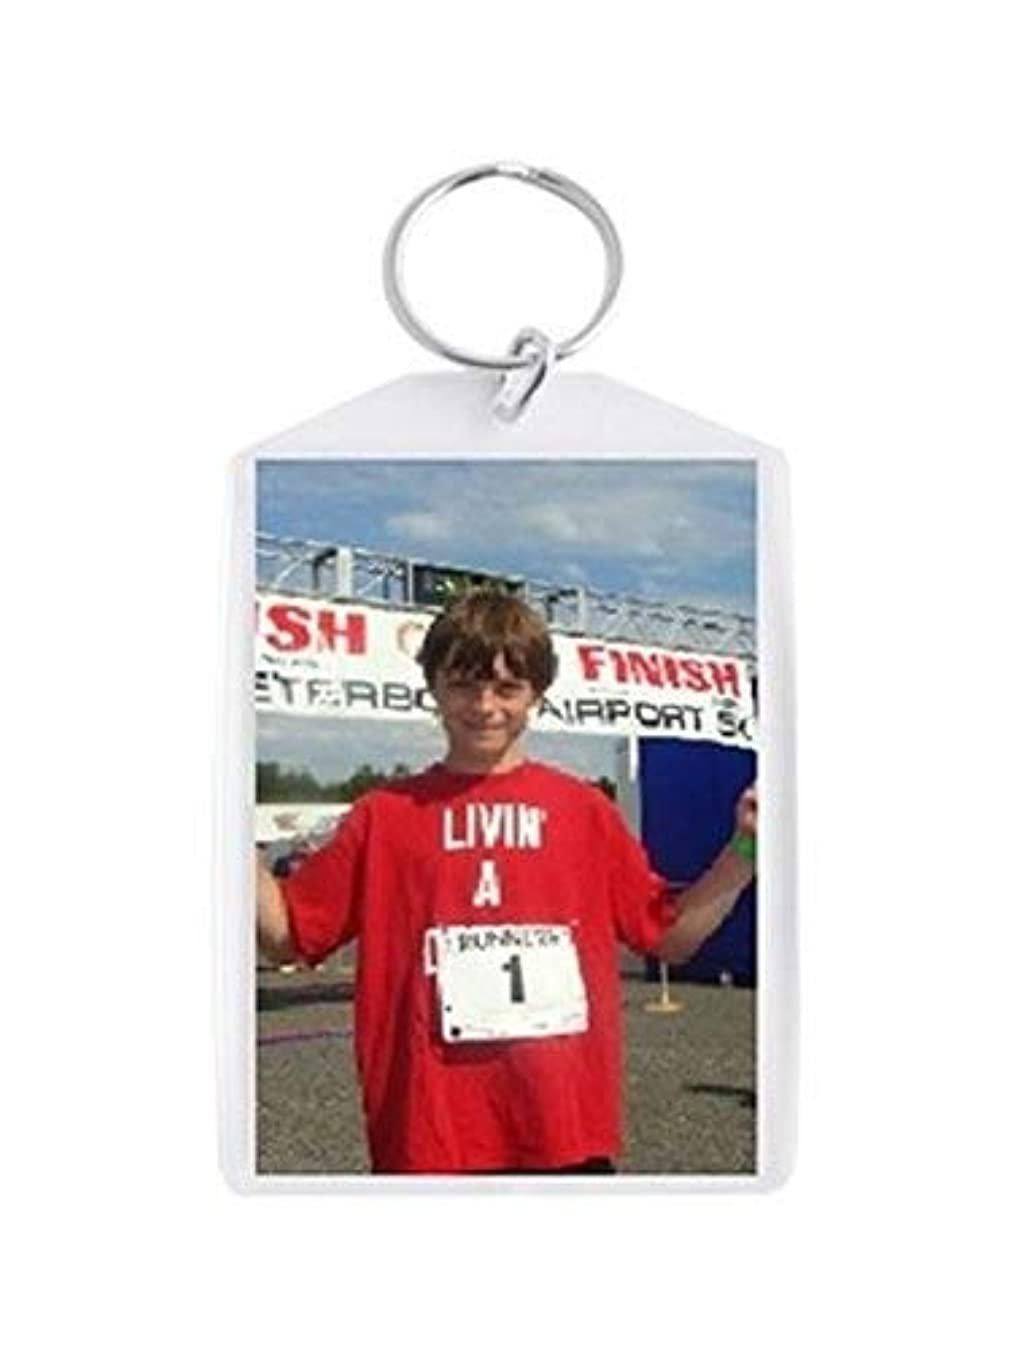 Plastic Photo Snap-in Key Chain - 2x3 (Pack of 100)